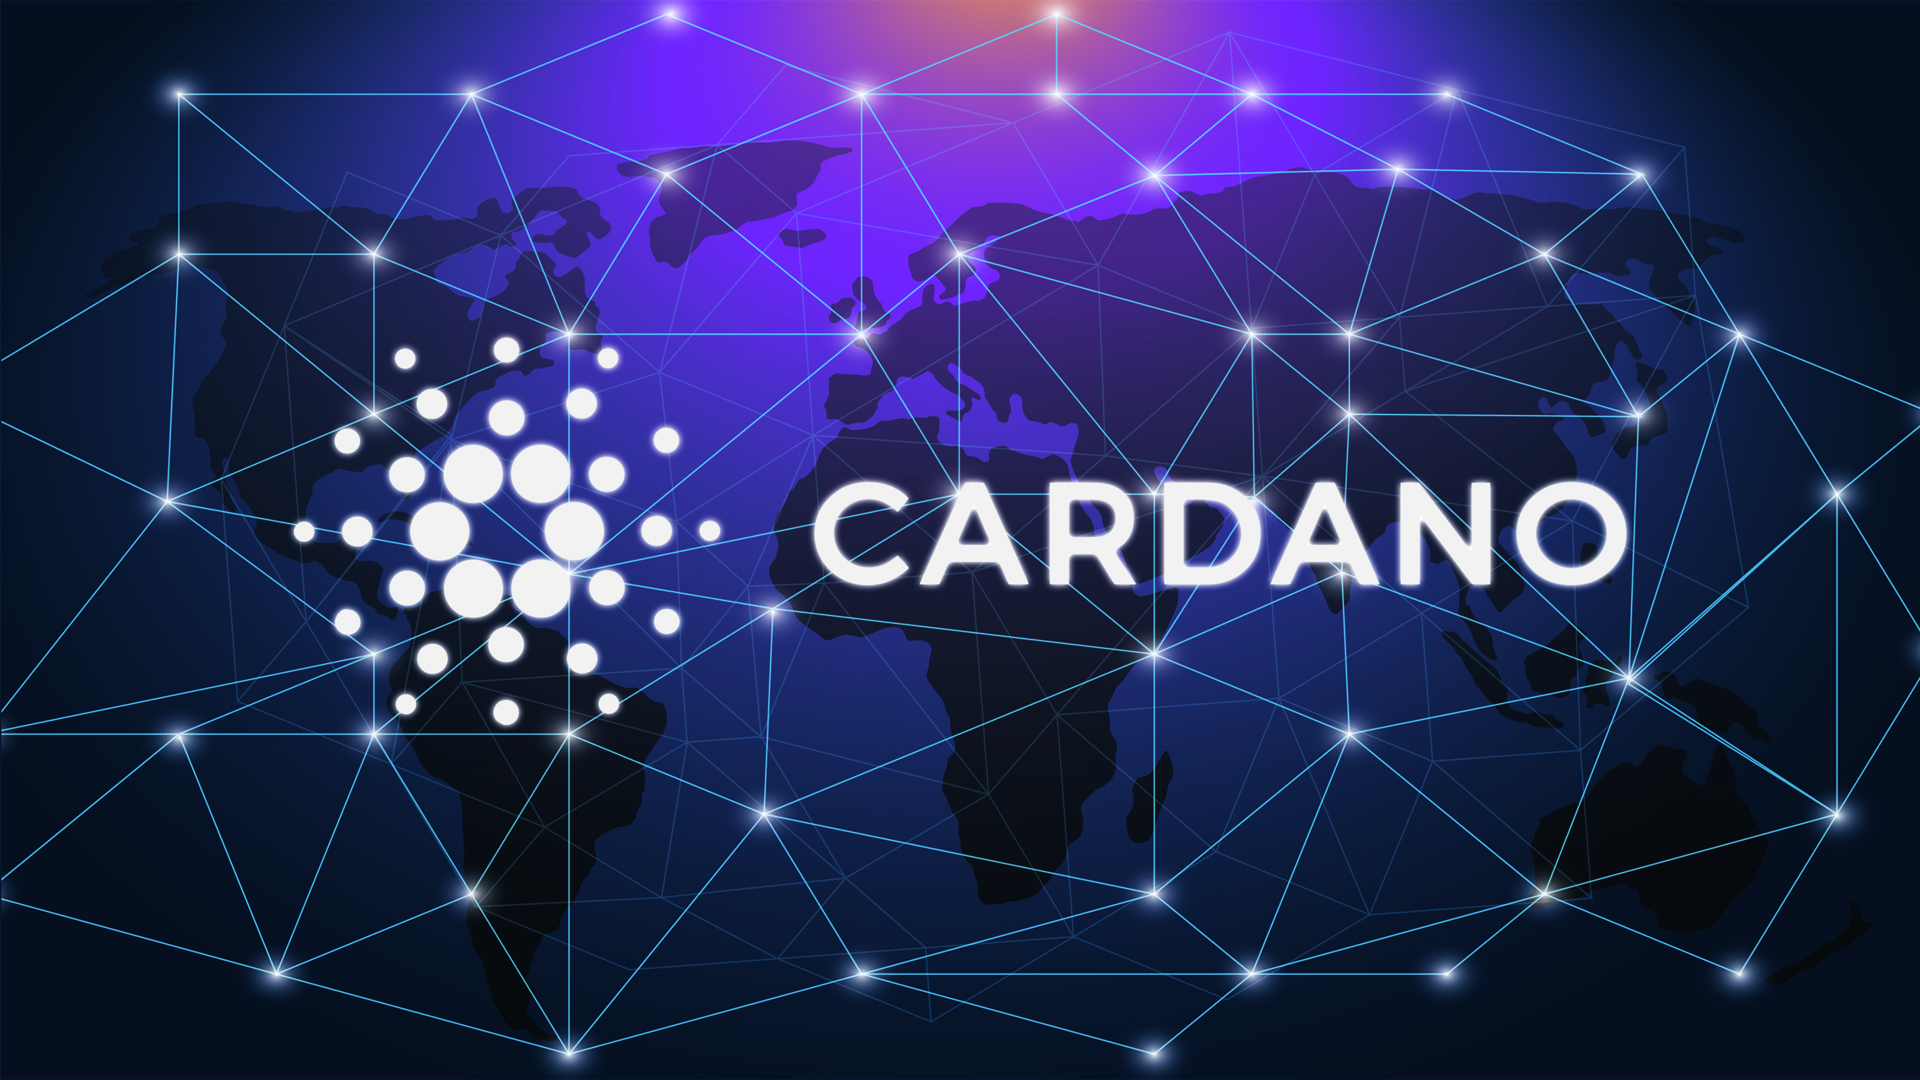 Cardano Best Blockchain